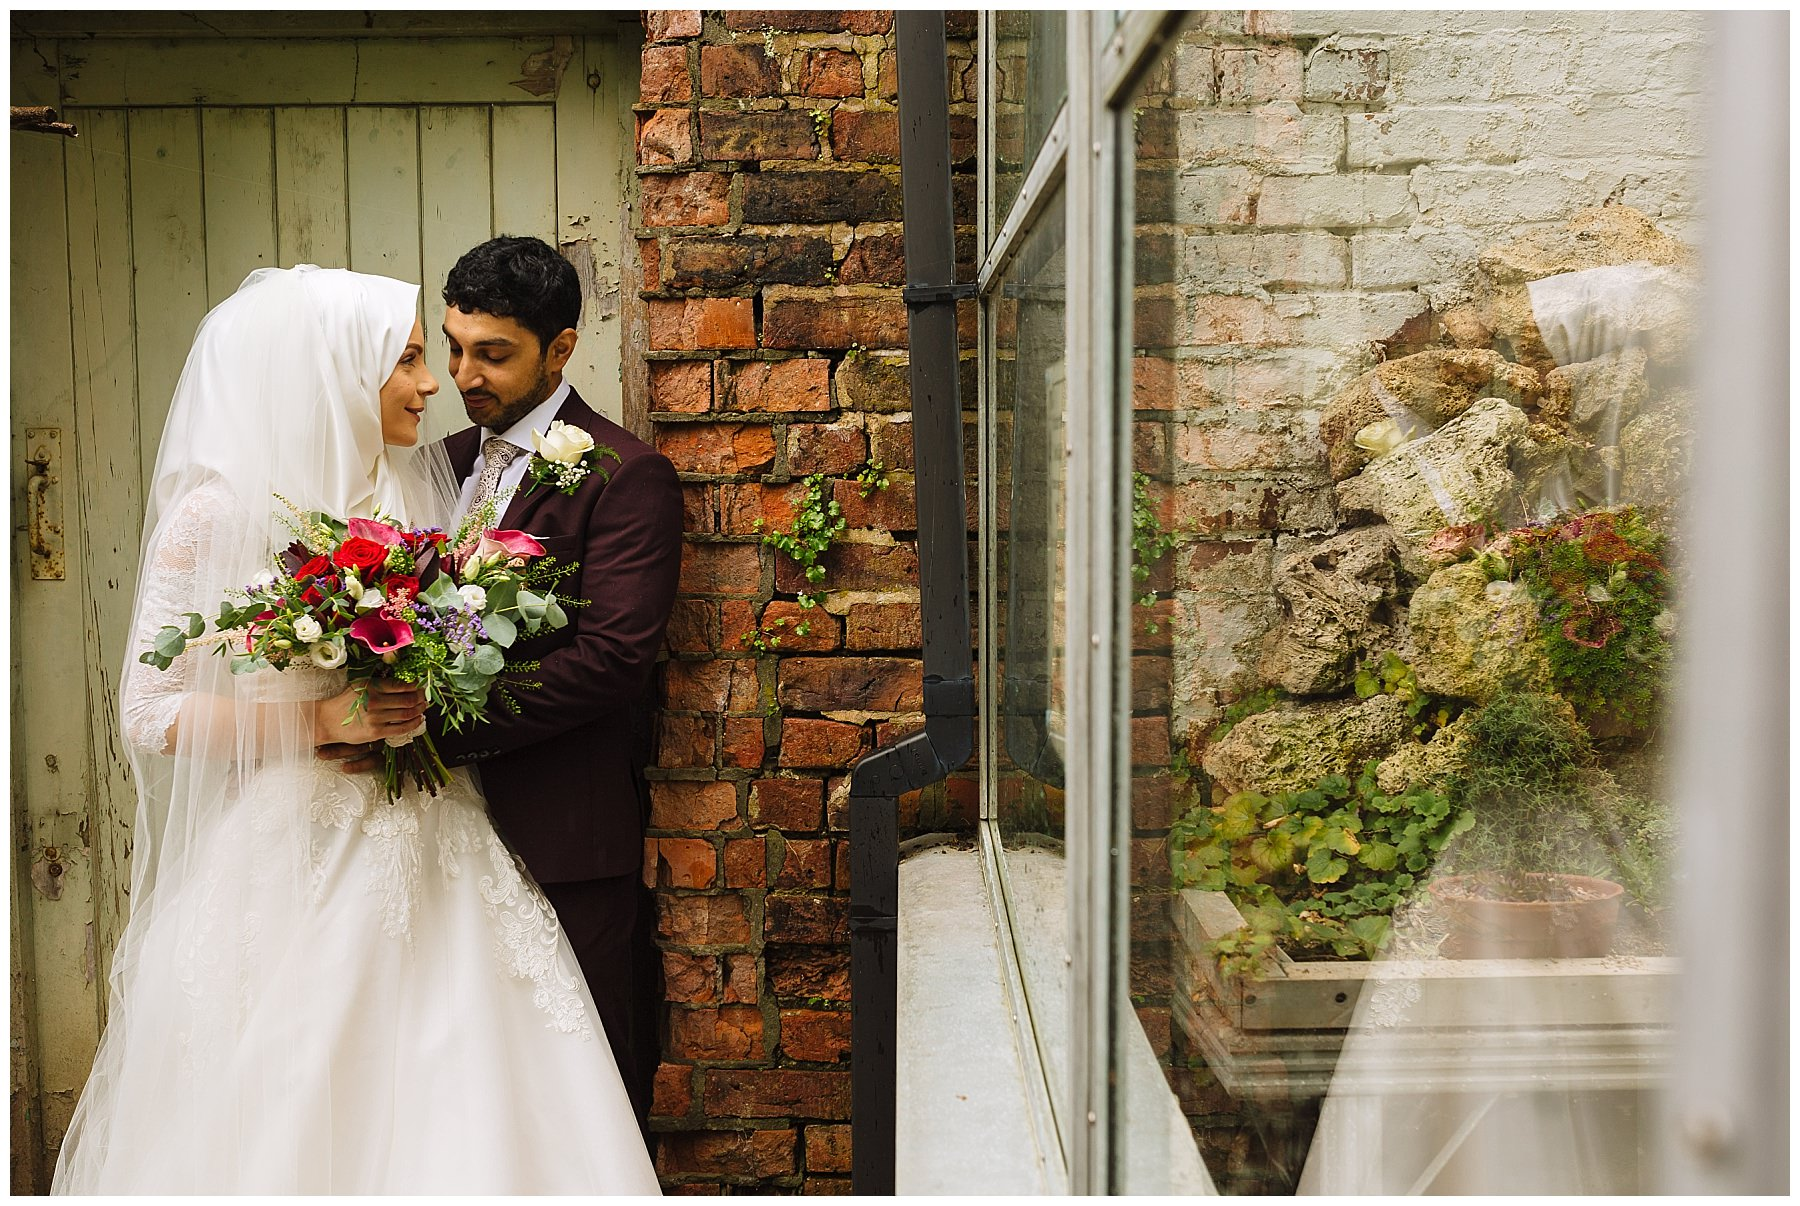 Bridal portraits at The Old Parsonage in Didsbury